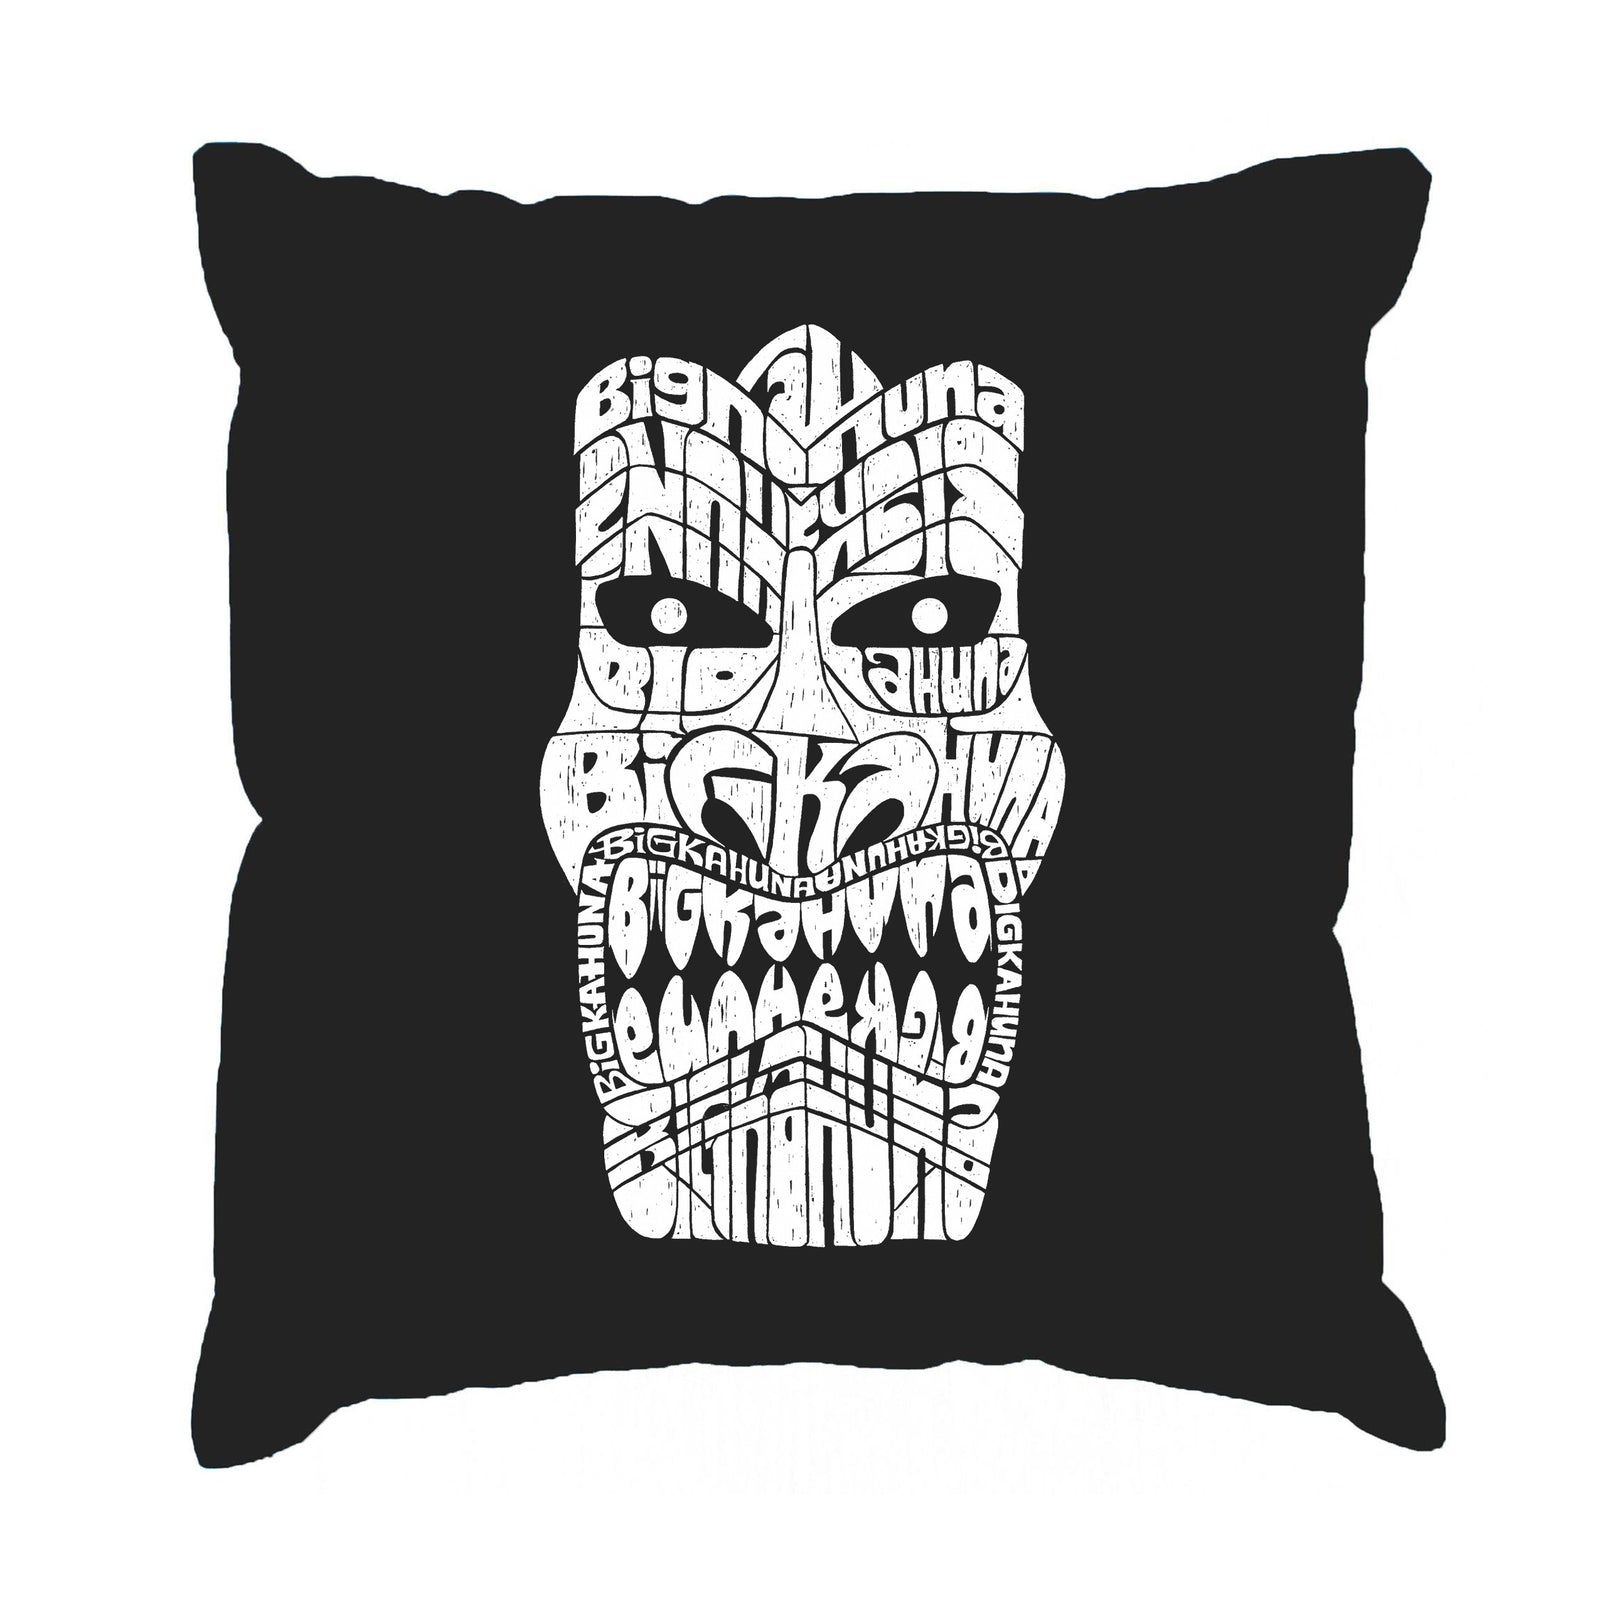 Throw Pillow Cover - TIKI - BIG KAHUNA